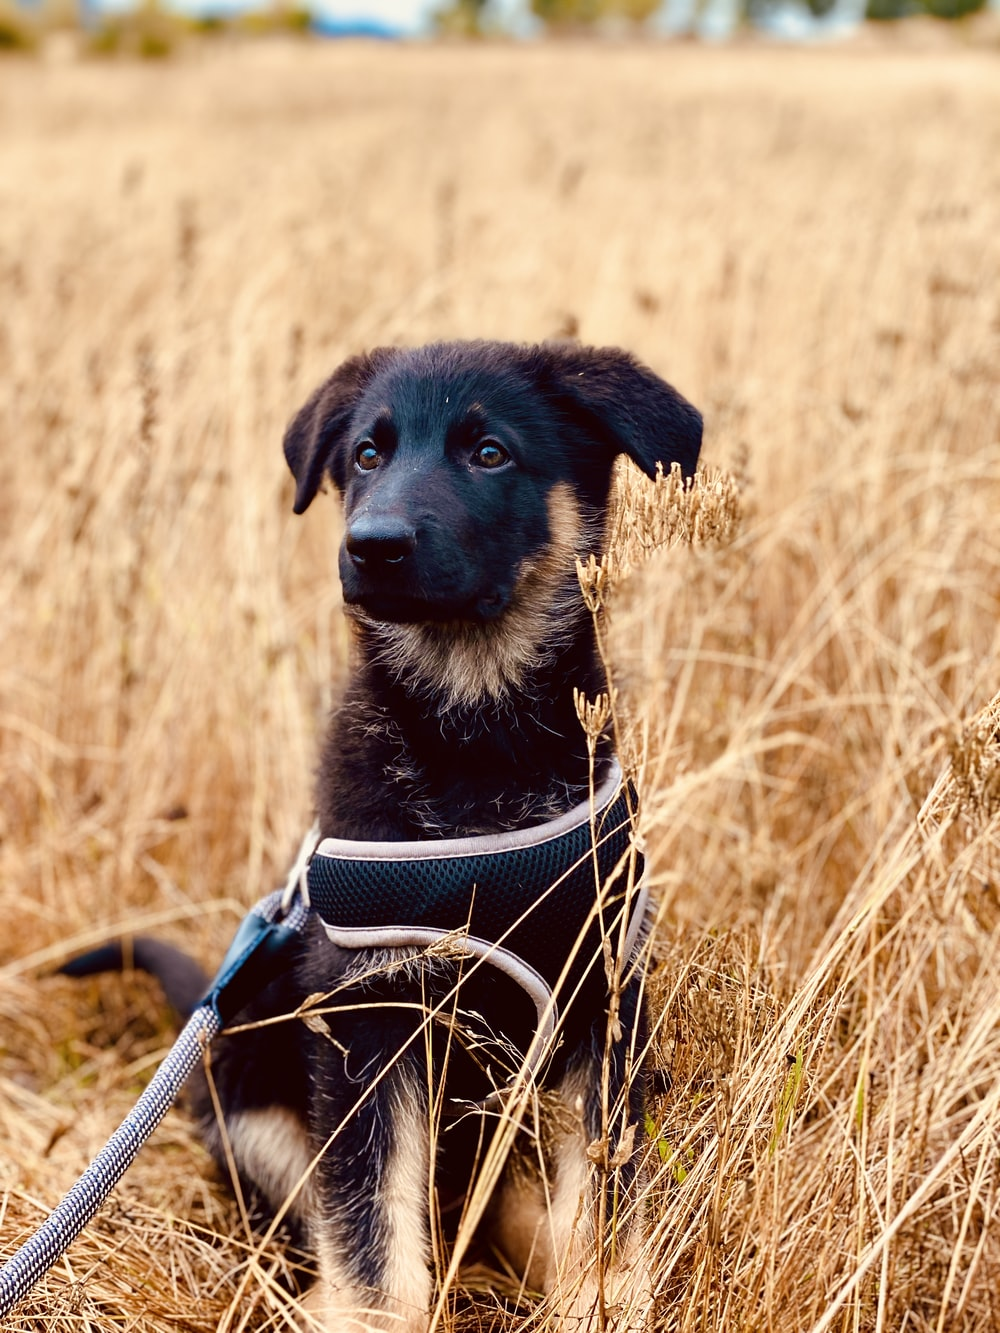 black and brown short coated dog sitting on brown grass field during daytime